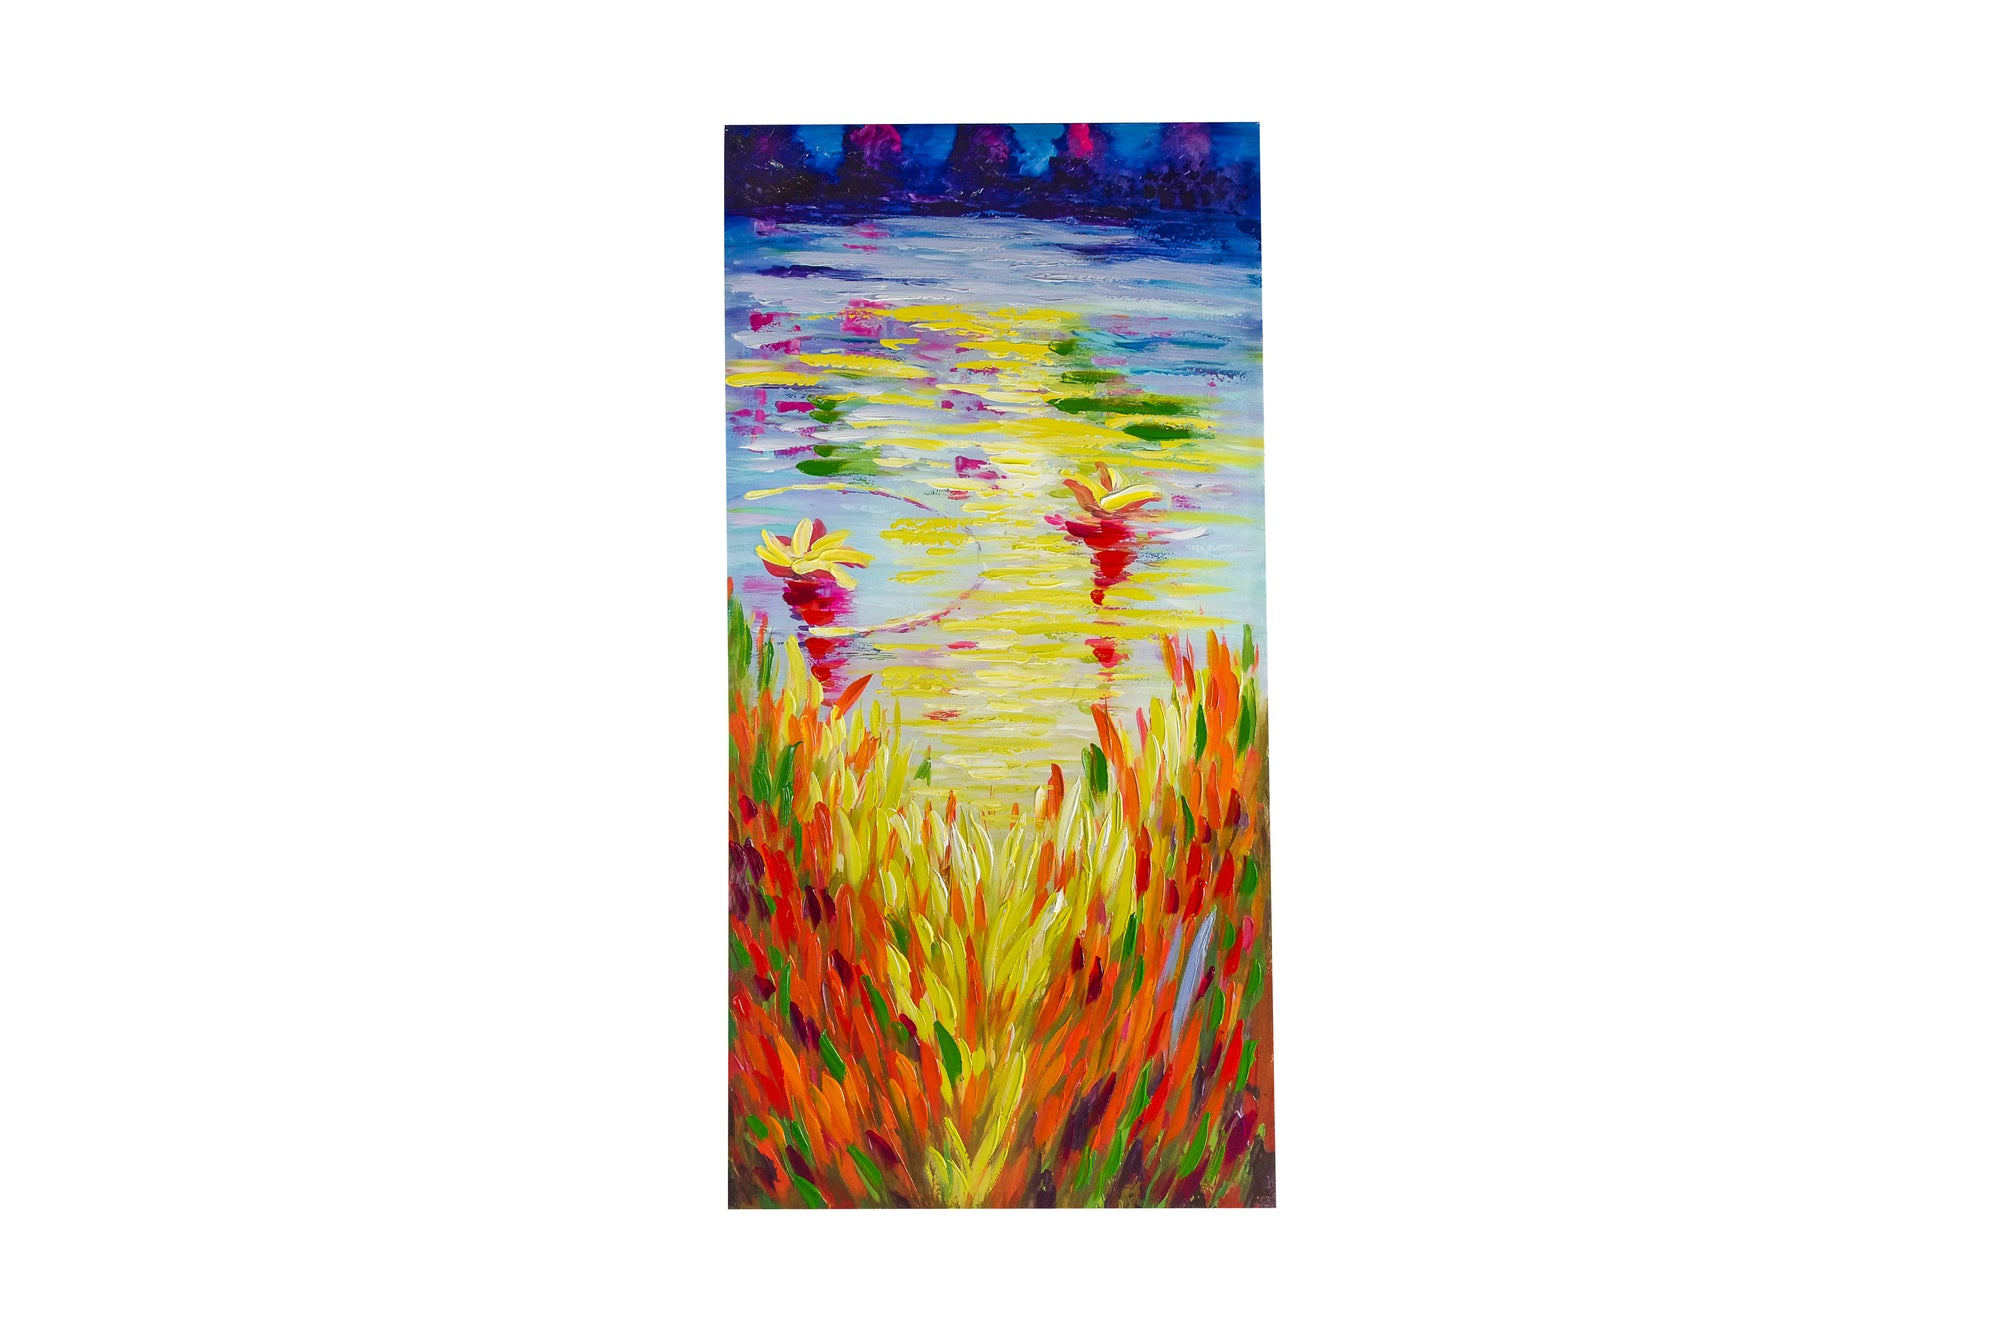 rippling lakeside colour hand painted wall art on canvas - Fervor + Hue